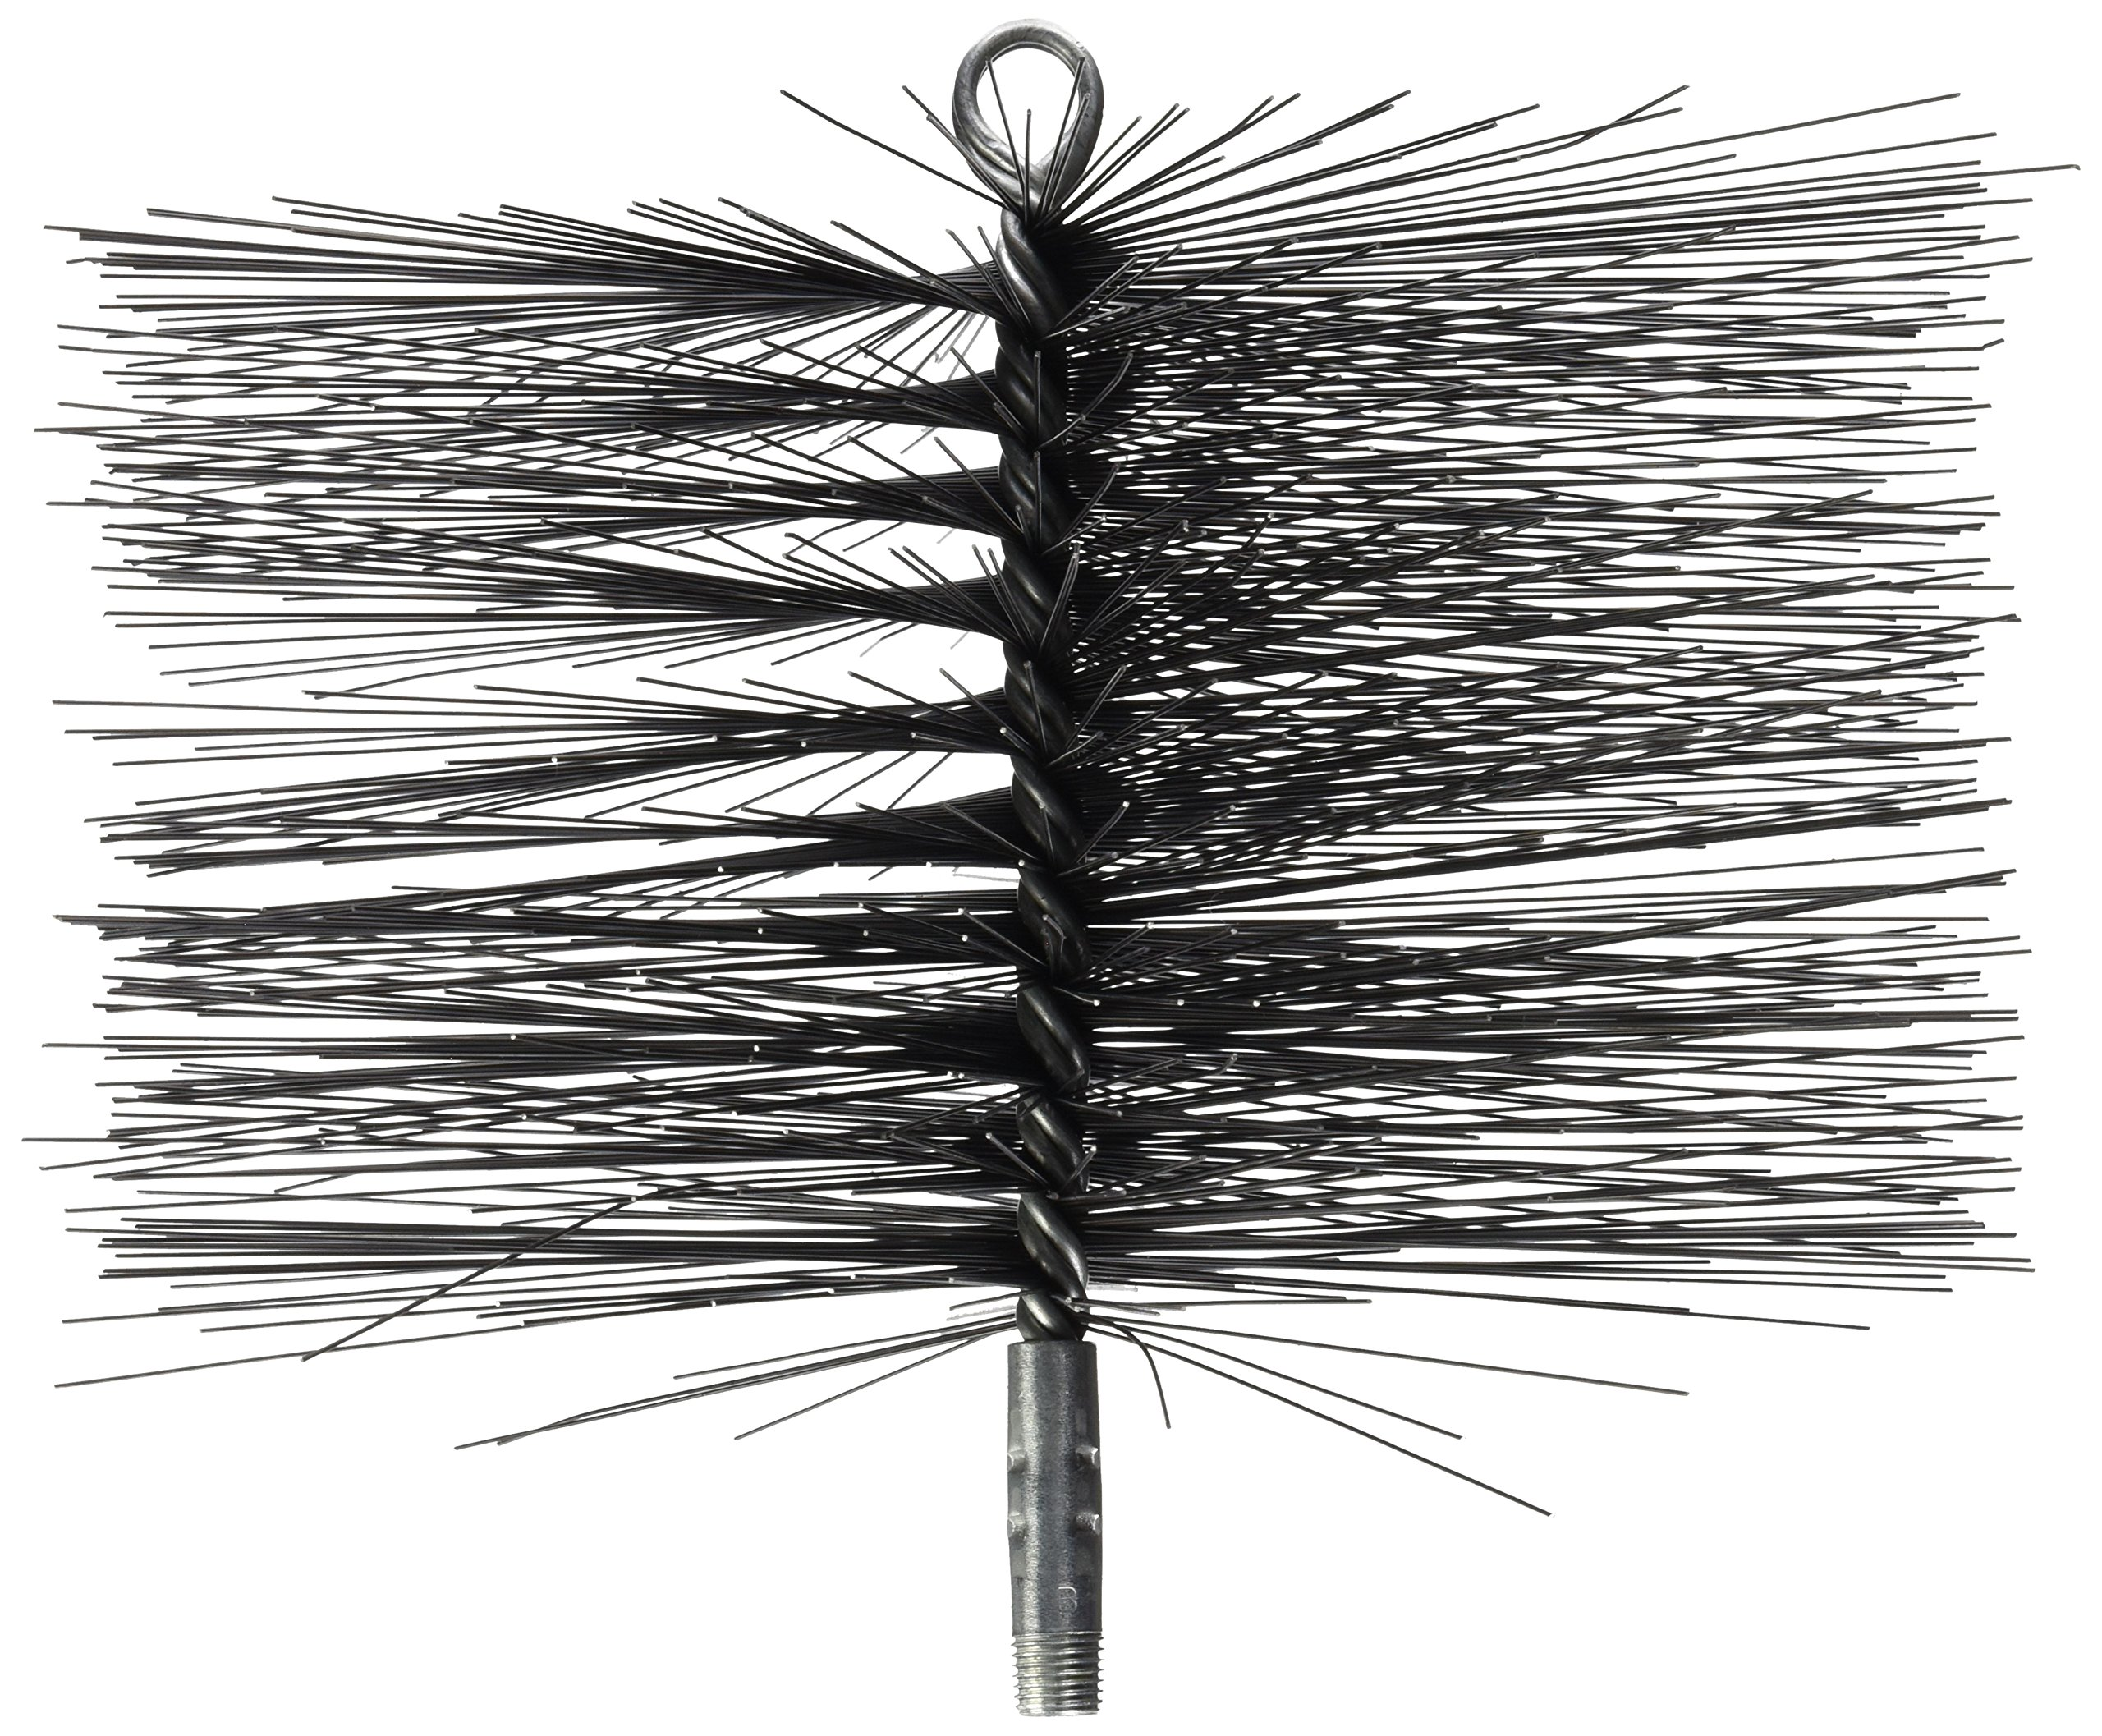 Rutland 36531 Rectangular Wire Chimney Sweep Brush, 10 by 6-Inch by Rutland Products